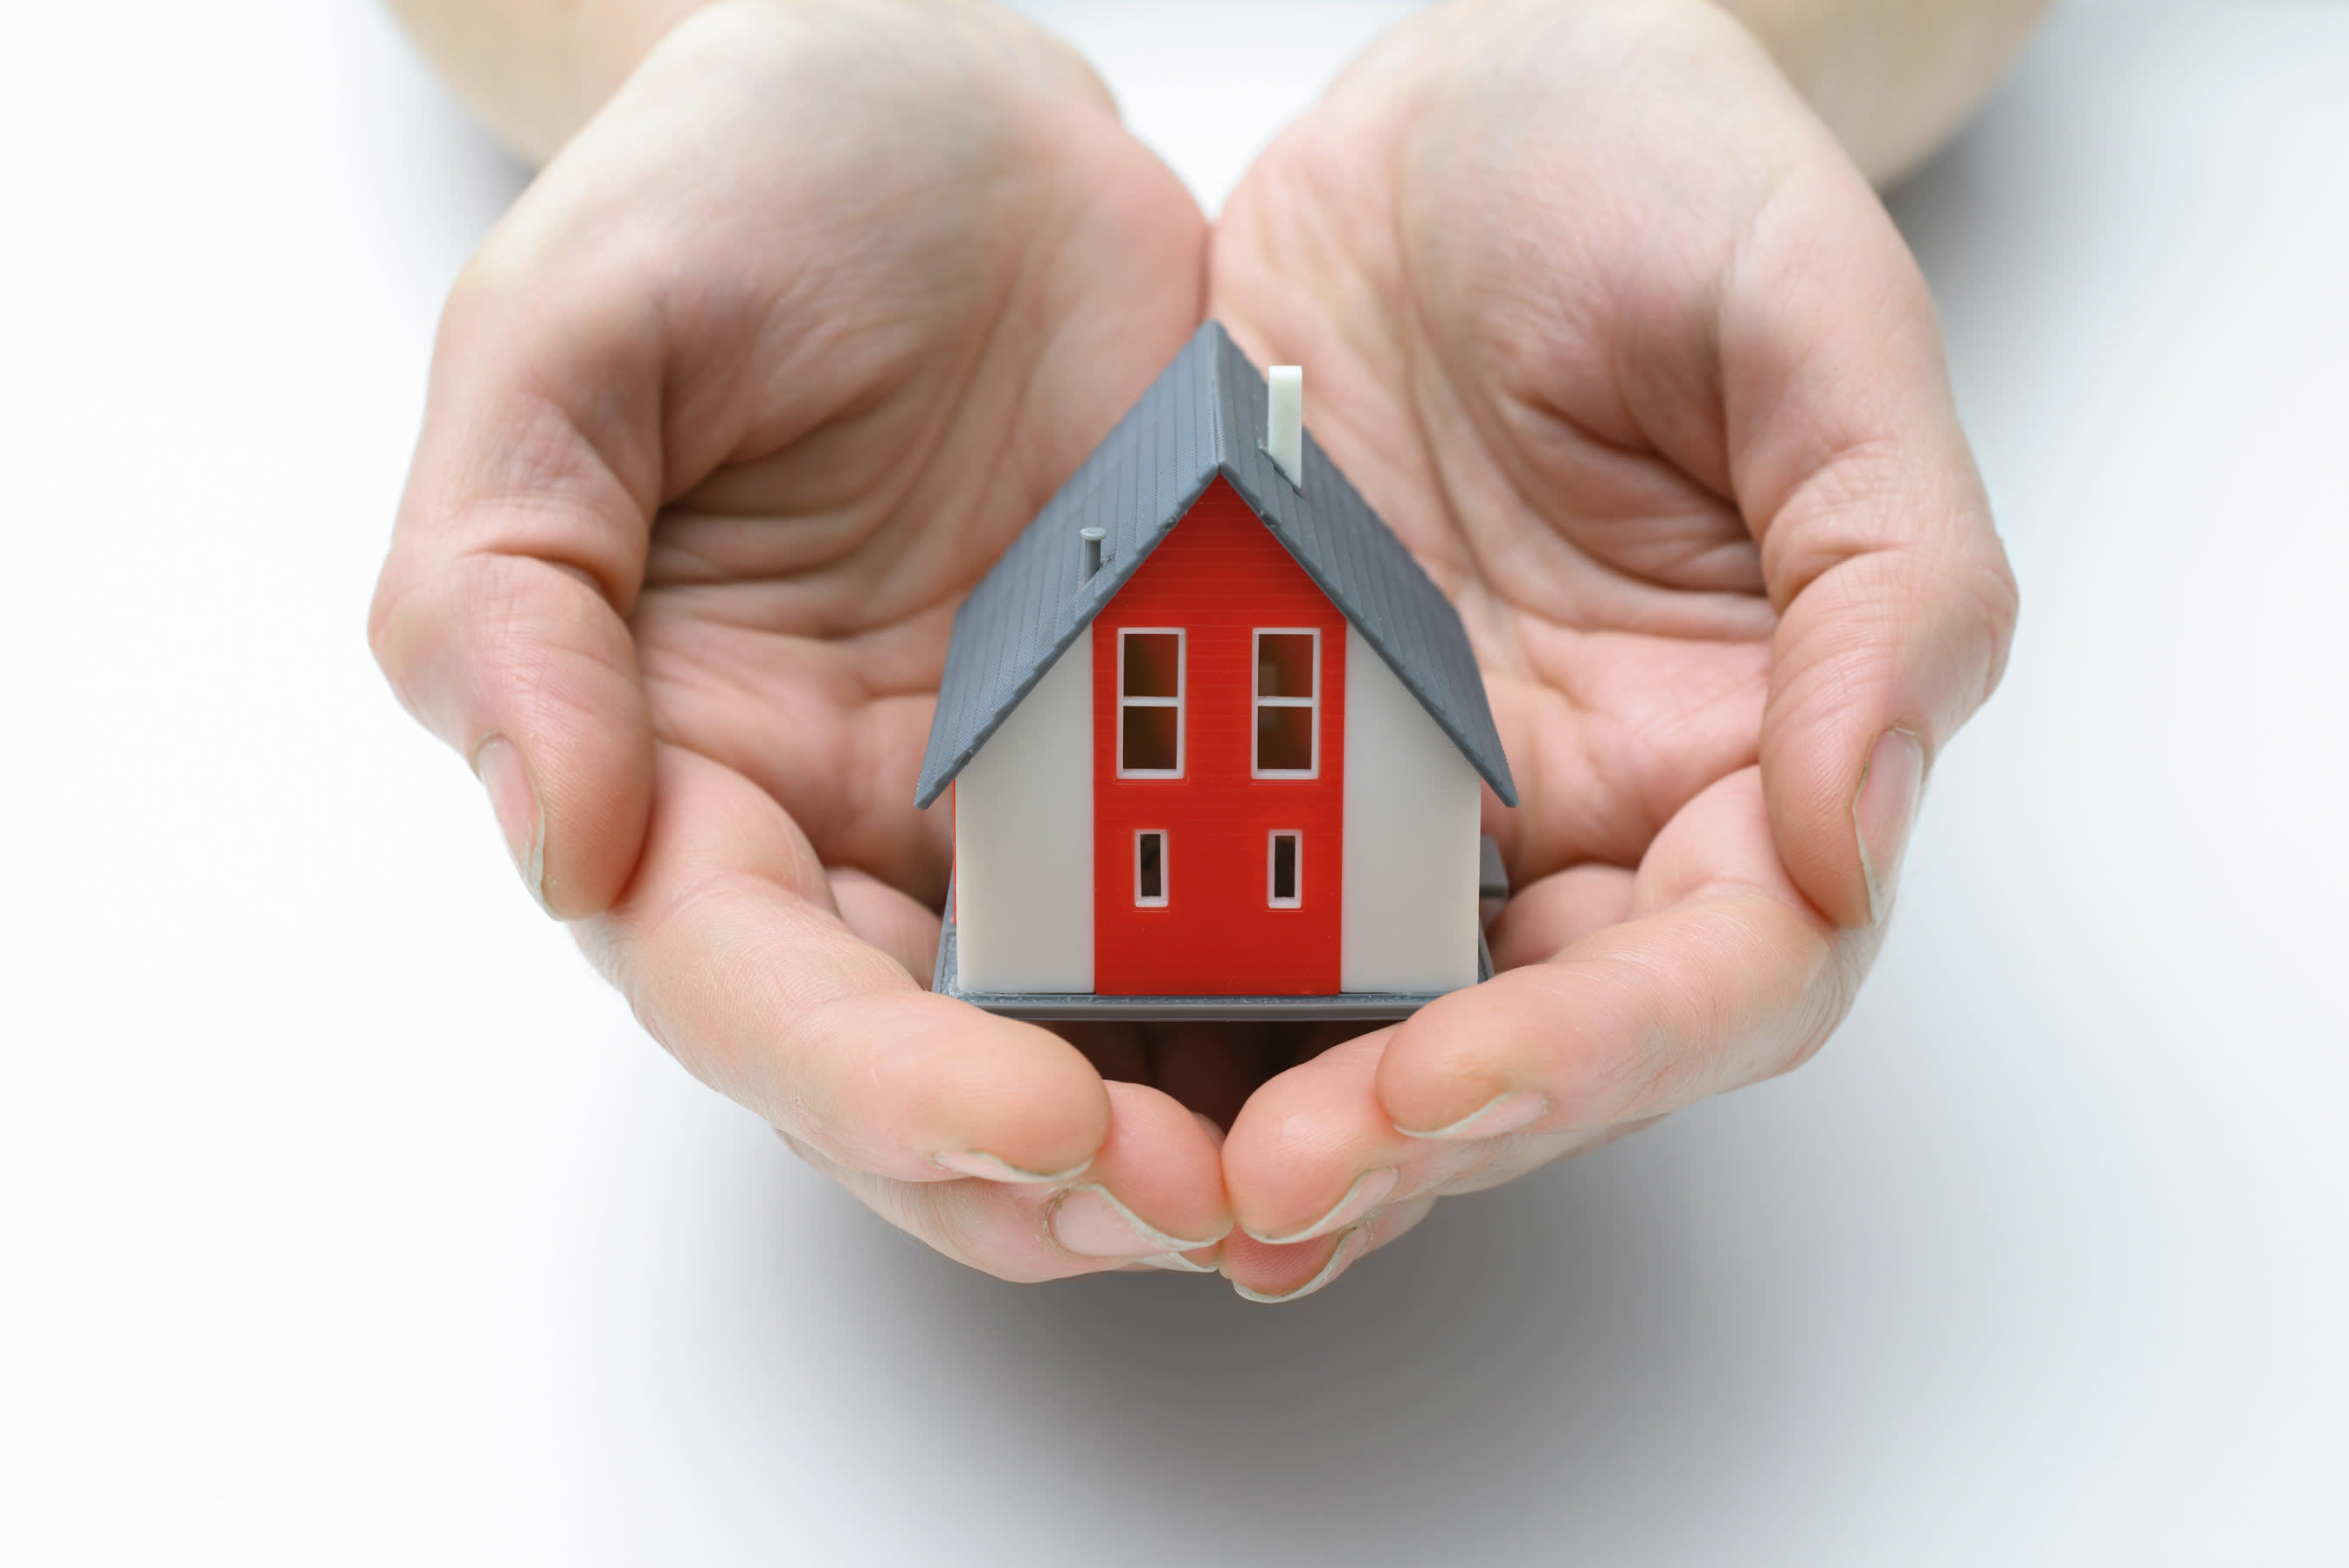 Specialist lending becoming more popular among brokers